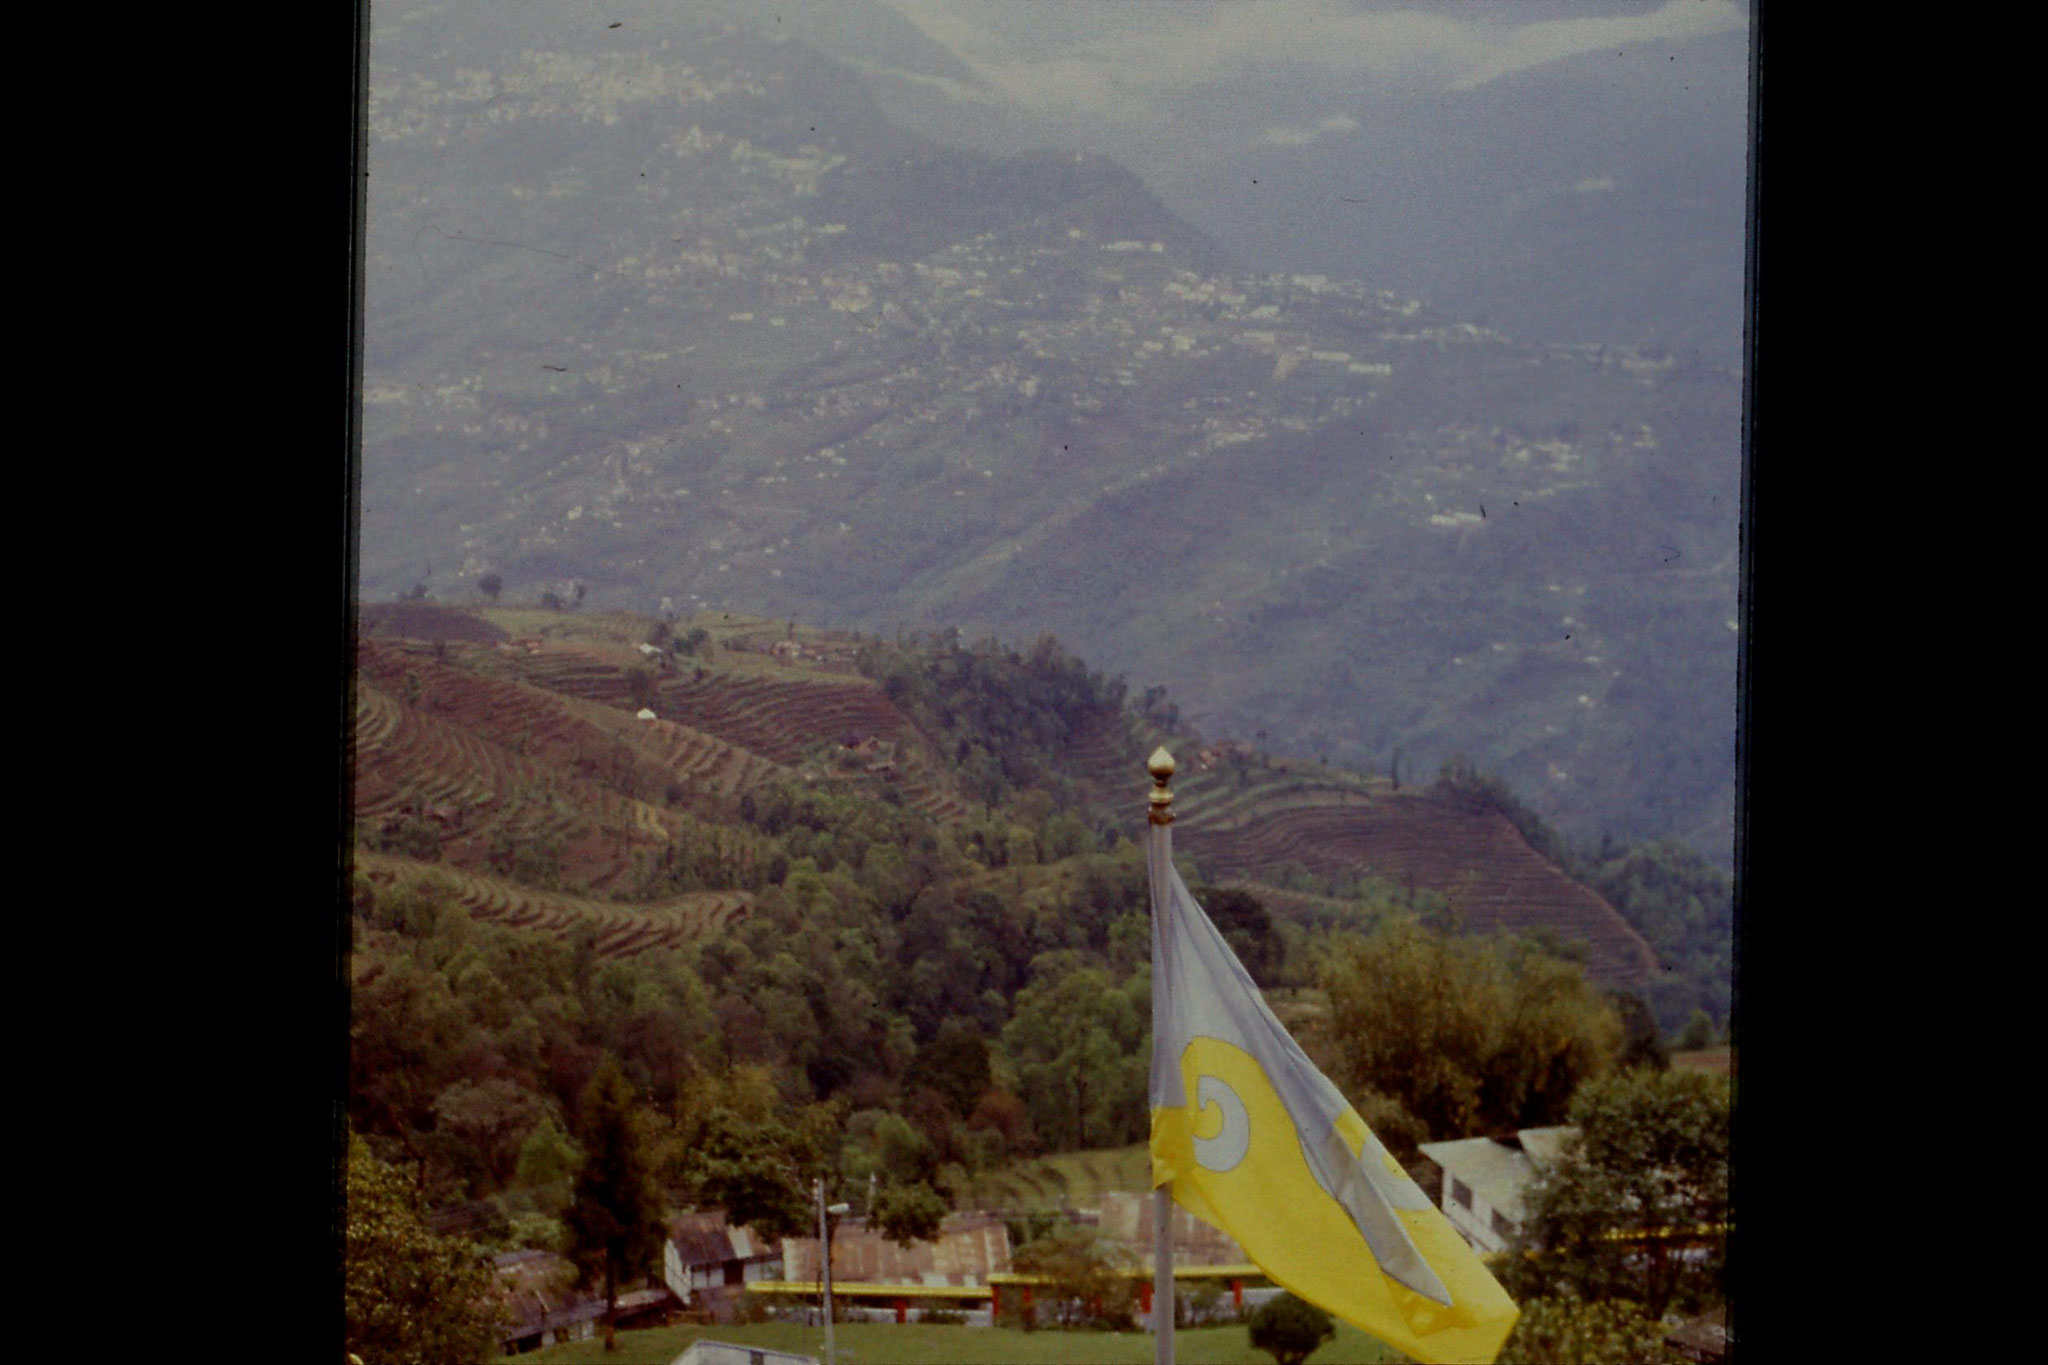 115/11: 23/4/1990 Rumtek - view of Gangtok and terrain